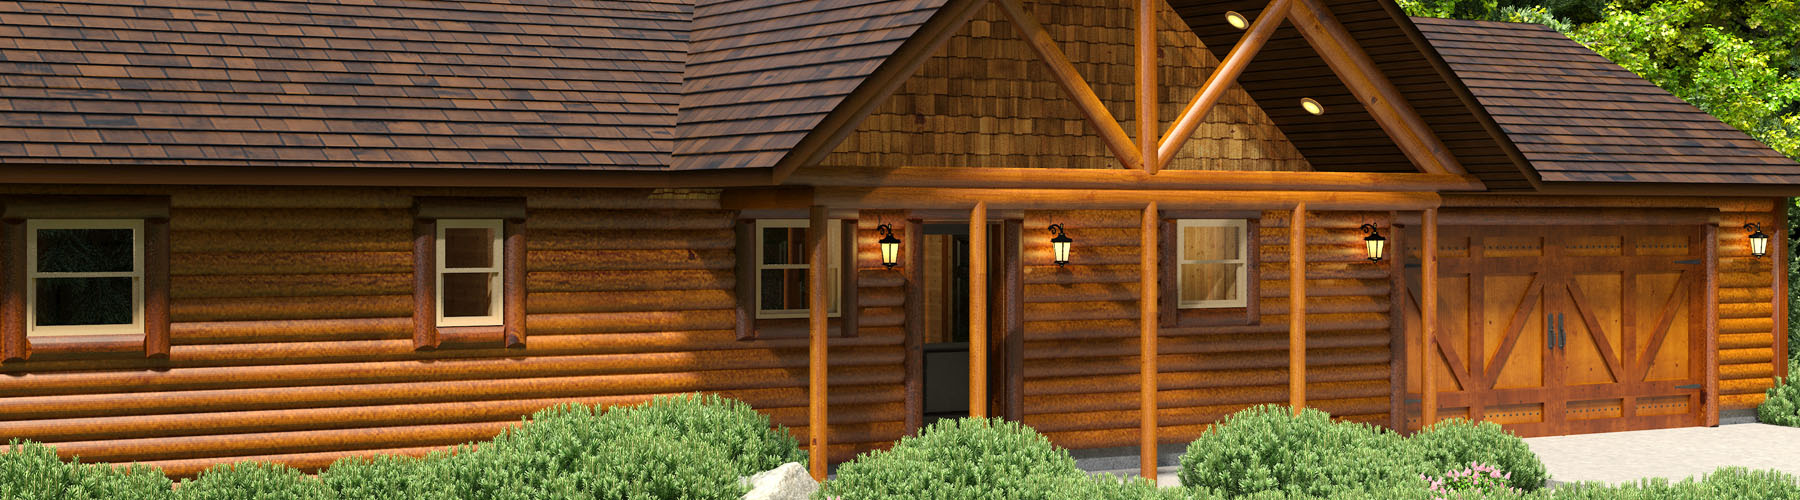 Perfect Log Cabin 1480AR-BP Base Package Series